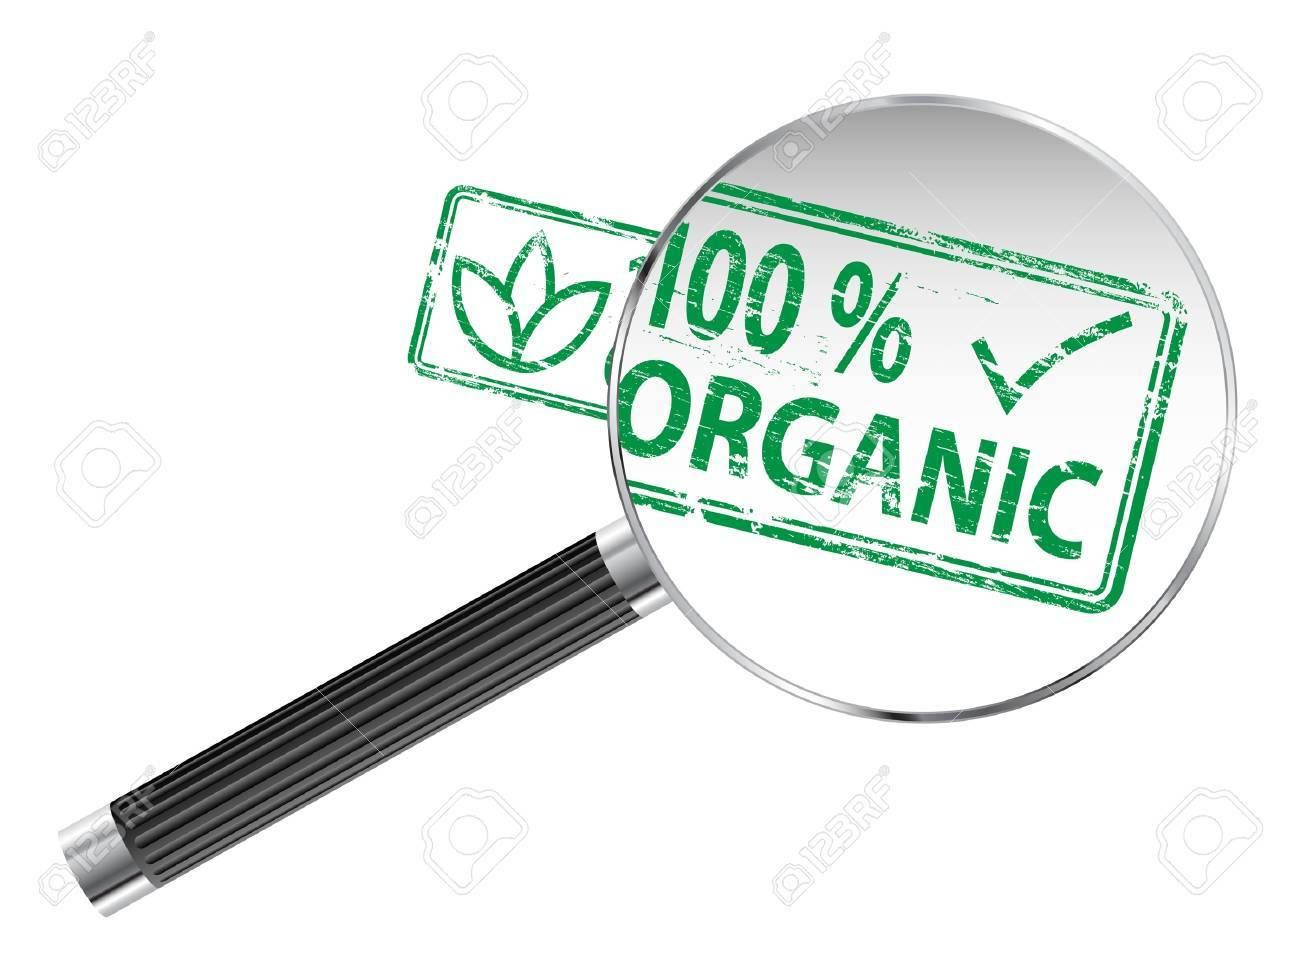 100 Percent Organic rubber stamp under a magnifying glass Stock Vector - 15969857